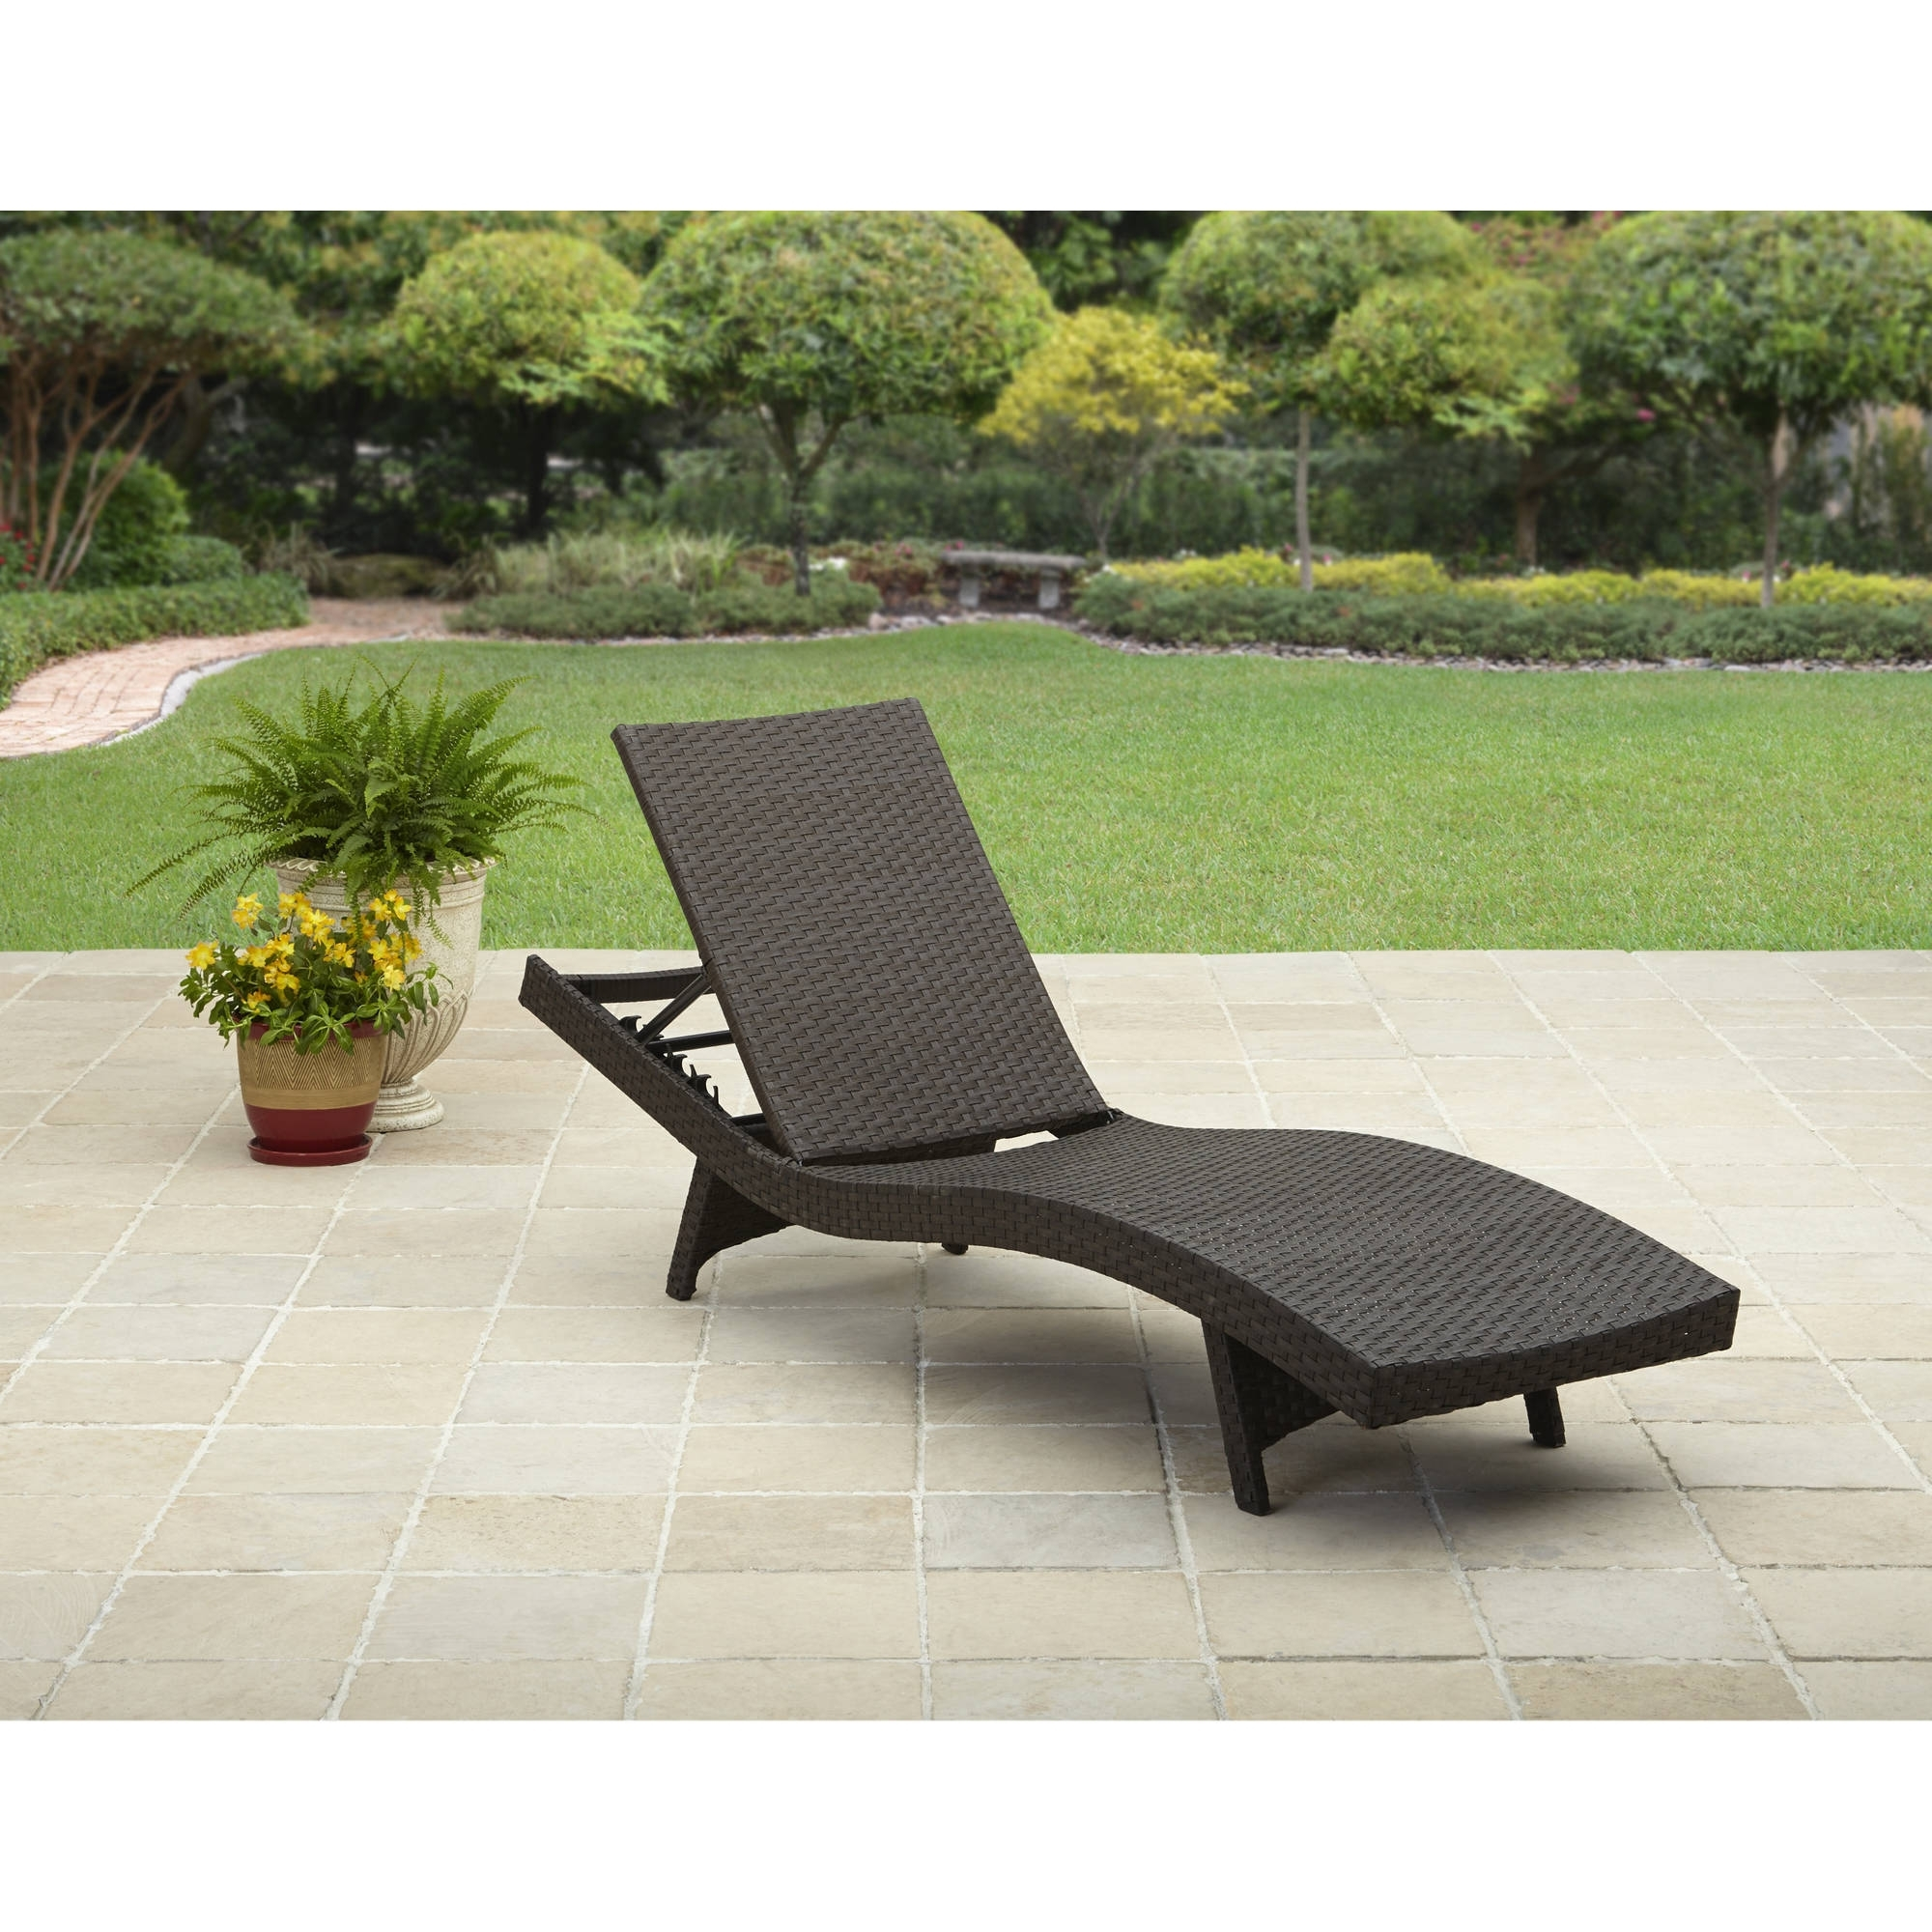 Better Homes And Gardens Avila Beach Chaise – Walmart With Regard To Preferred Walmart Chaise Lounge Cushions (View 7 of 15)